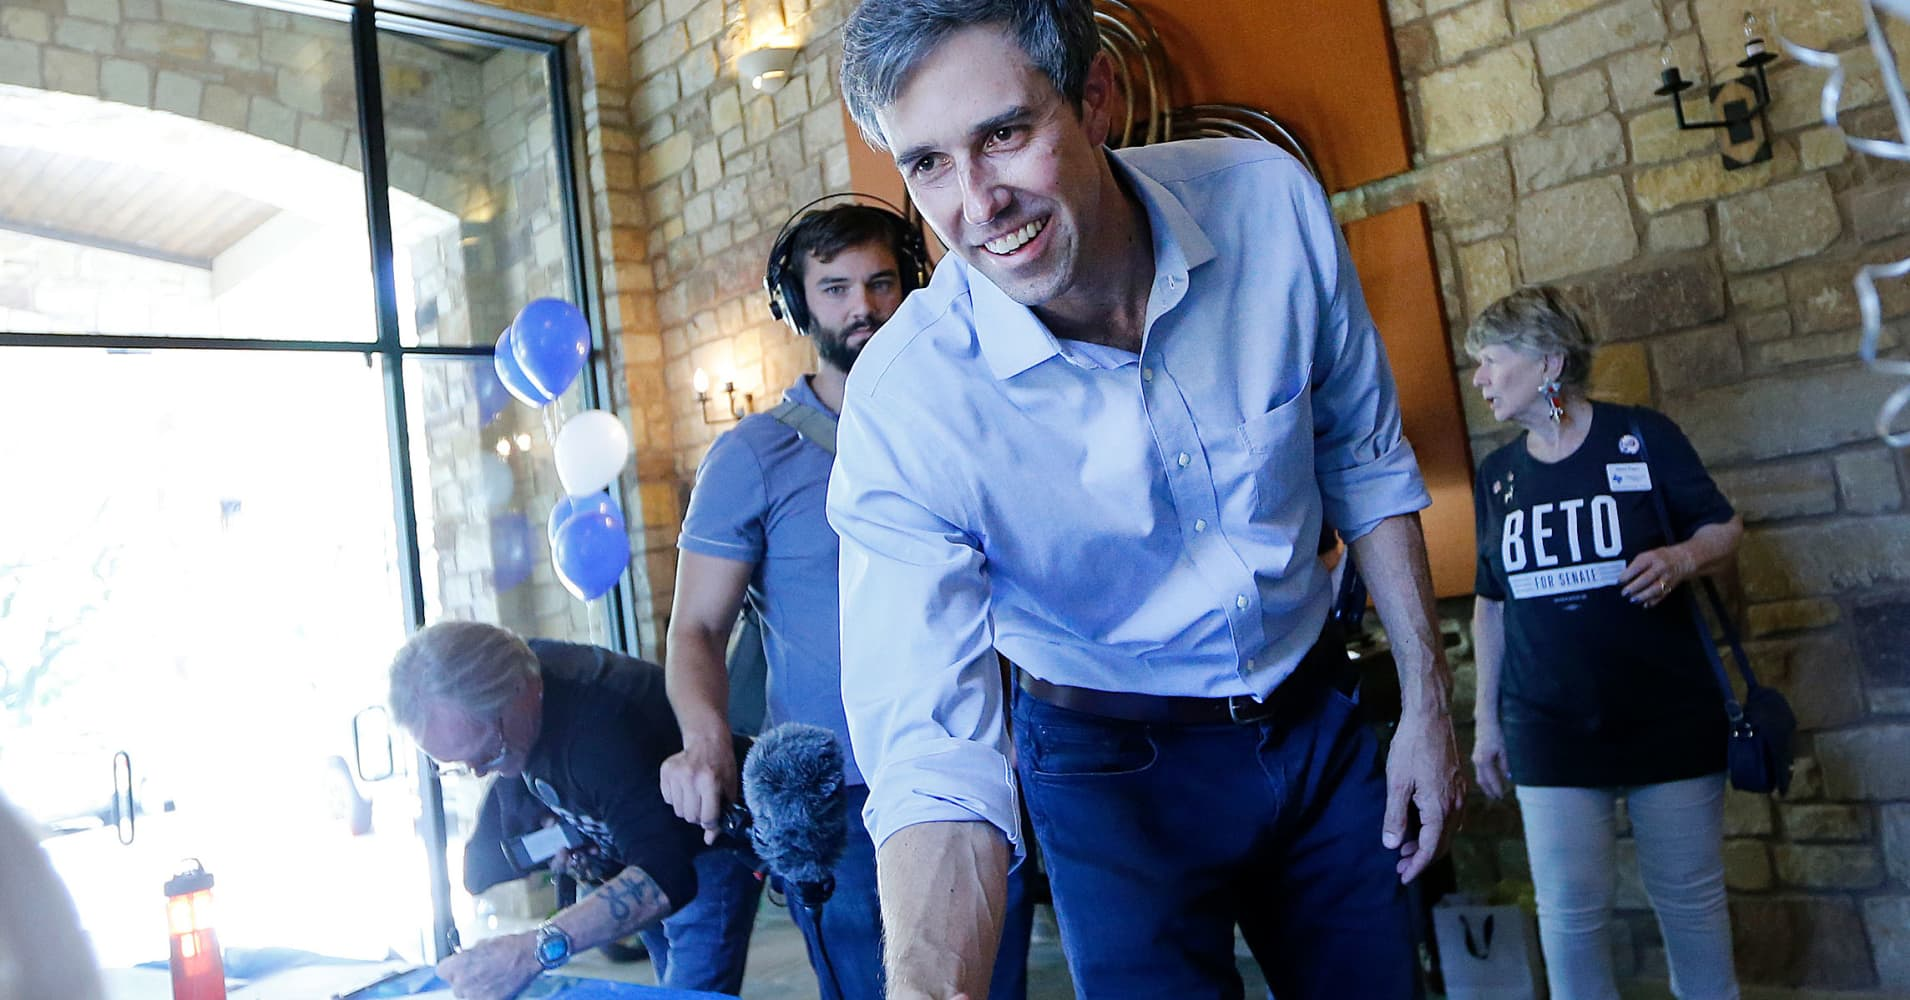 Silicon Valley tech employees are pouring money into Beto O'Rourke's campaign to unseat Ted Cruz